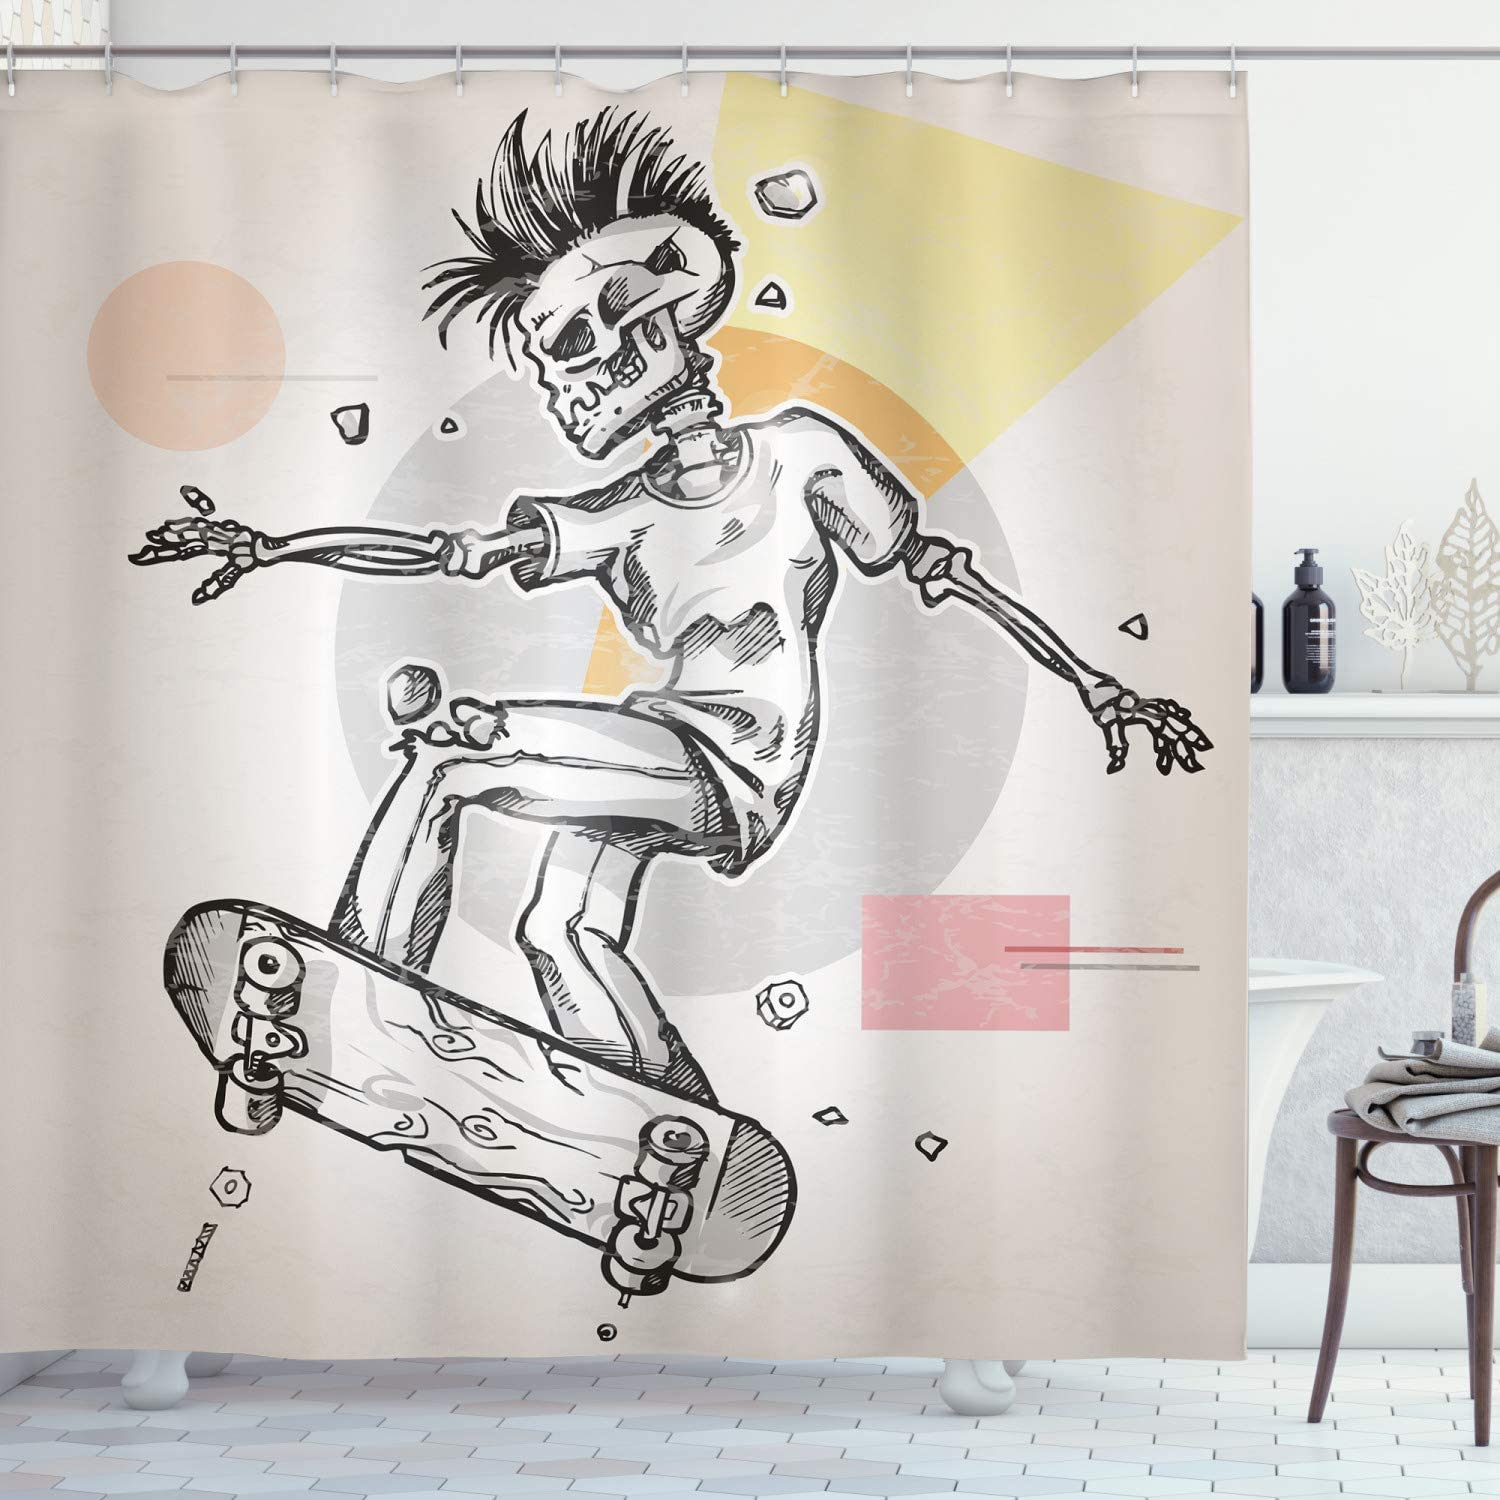 Ambesonne Skull Shower Curtain, Punk Rocker Skeleton Boy on a Skateboard Skiing with Abstract Background, Cloth Fabric Bathroom Decor Set with Hooks, 70